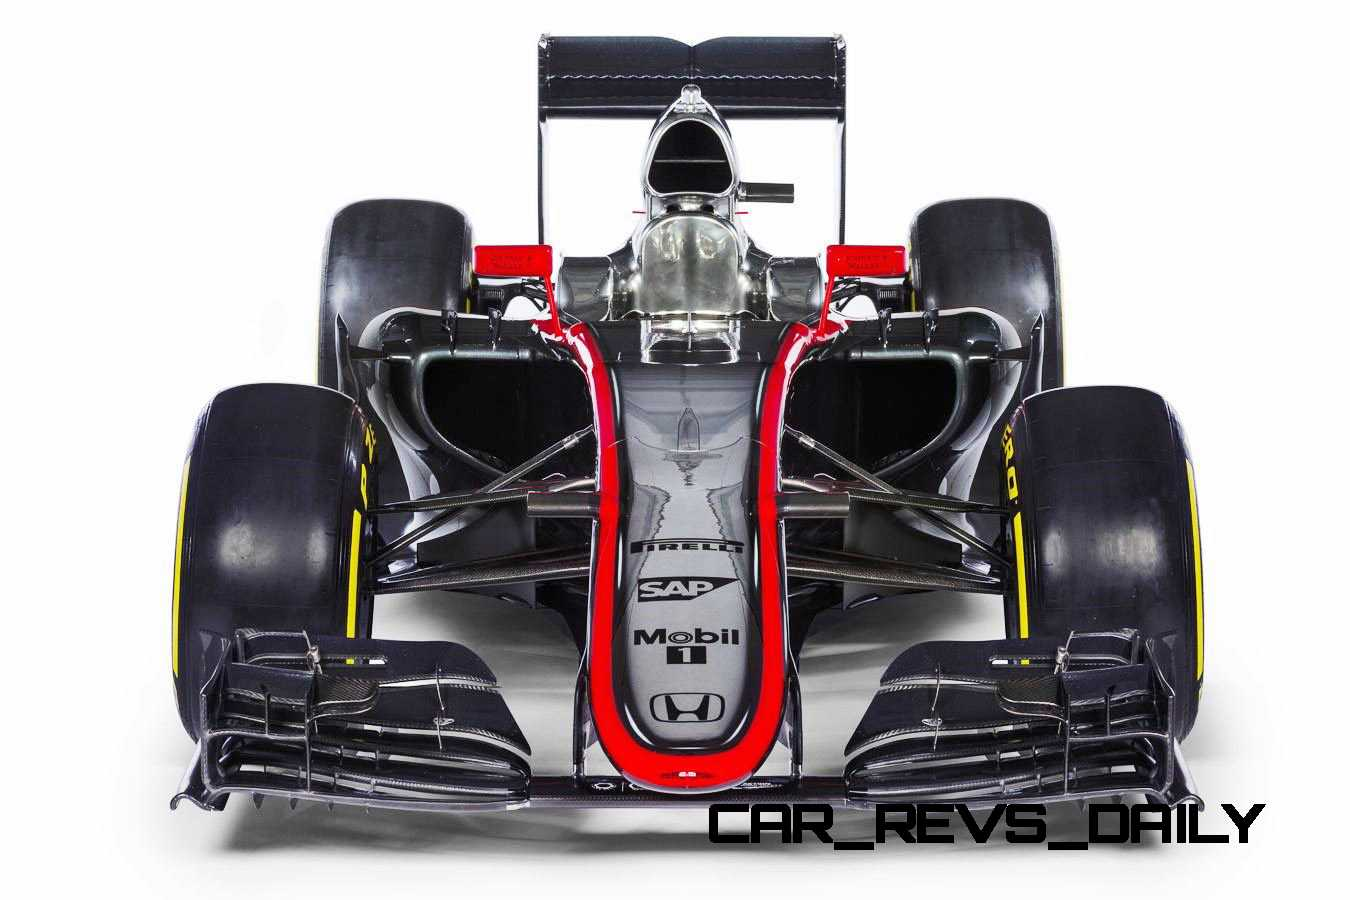 2015 F1 Cars Comparo - Infiniti RB11 vs McLaren-Honda MP4-30 vs AMG W06 vs Ferrari SF15T 24